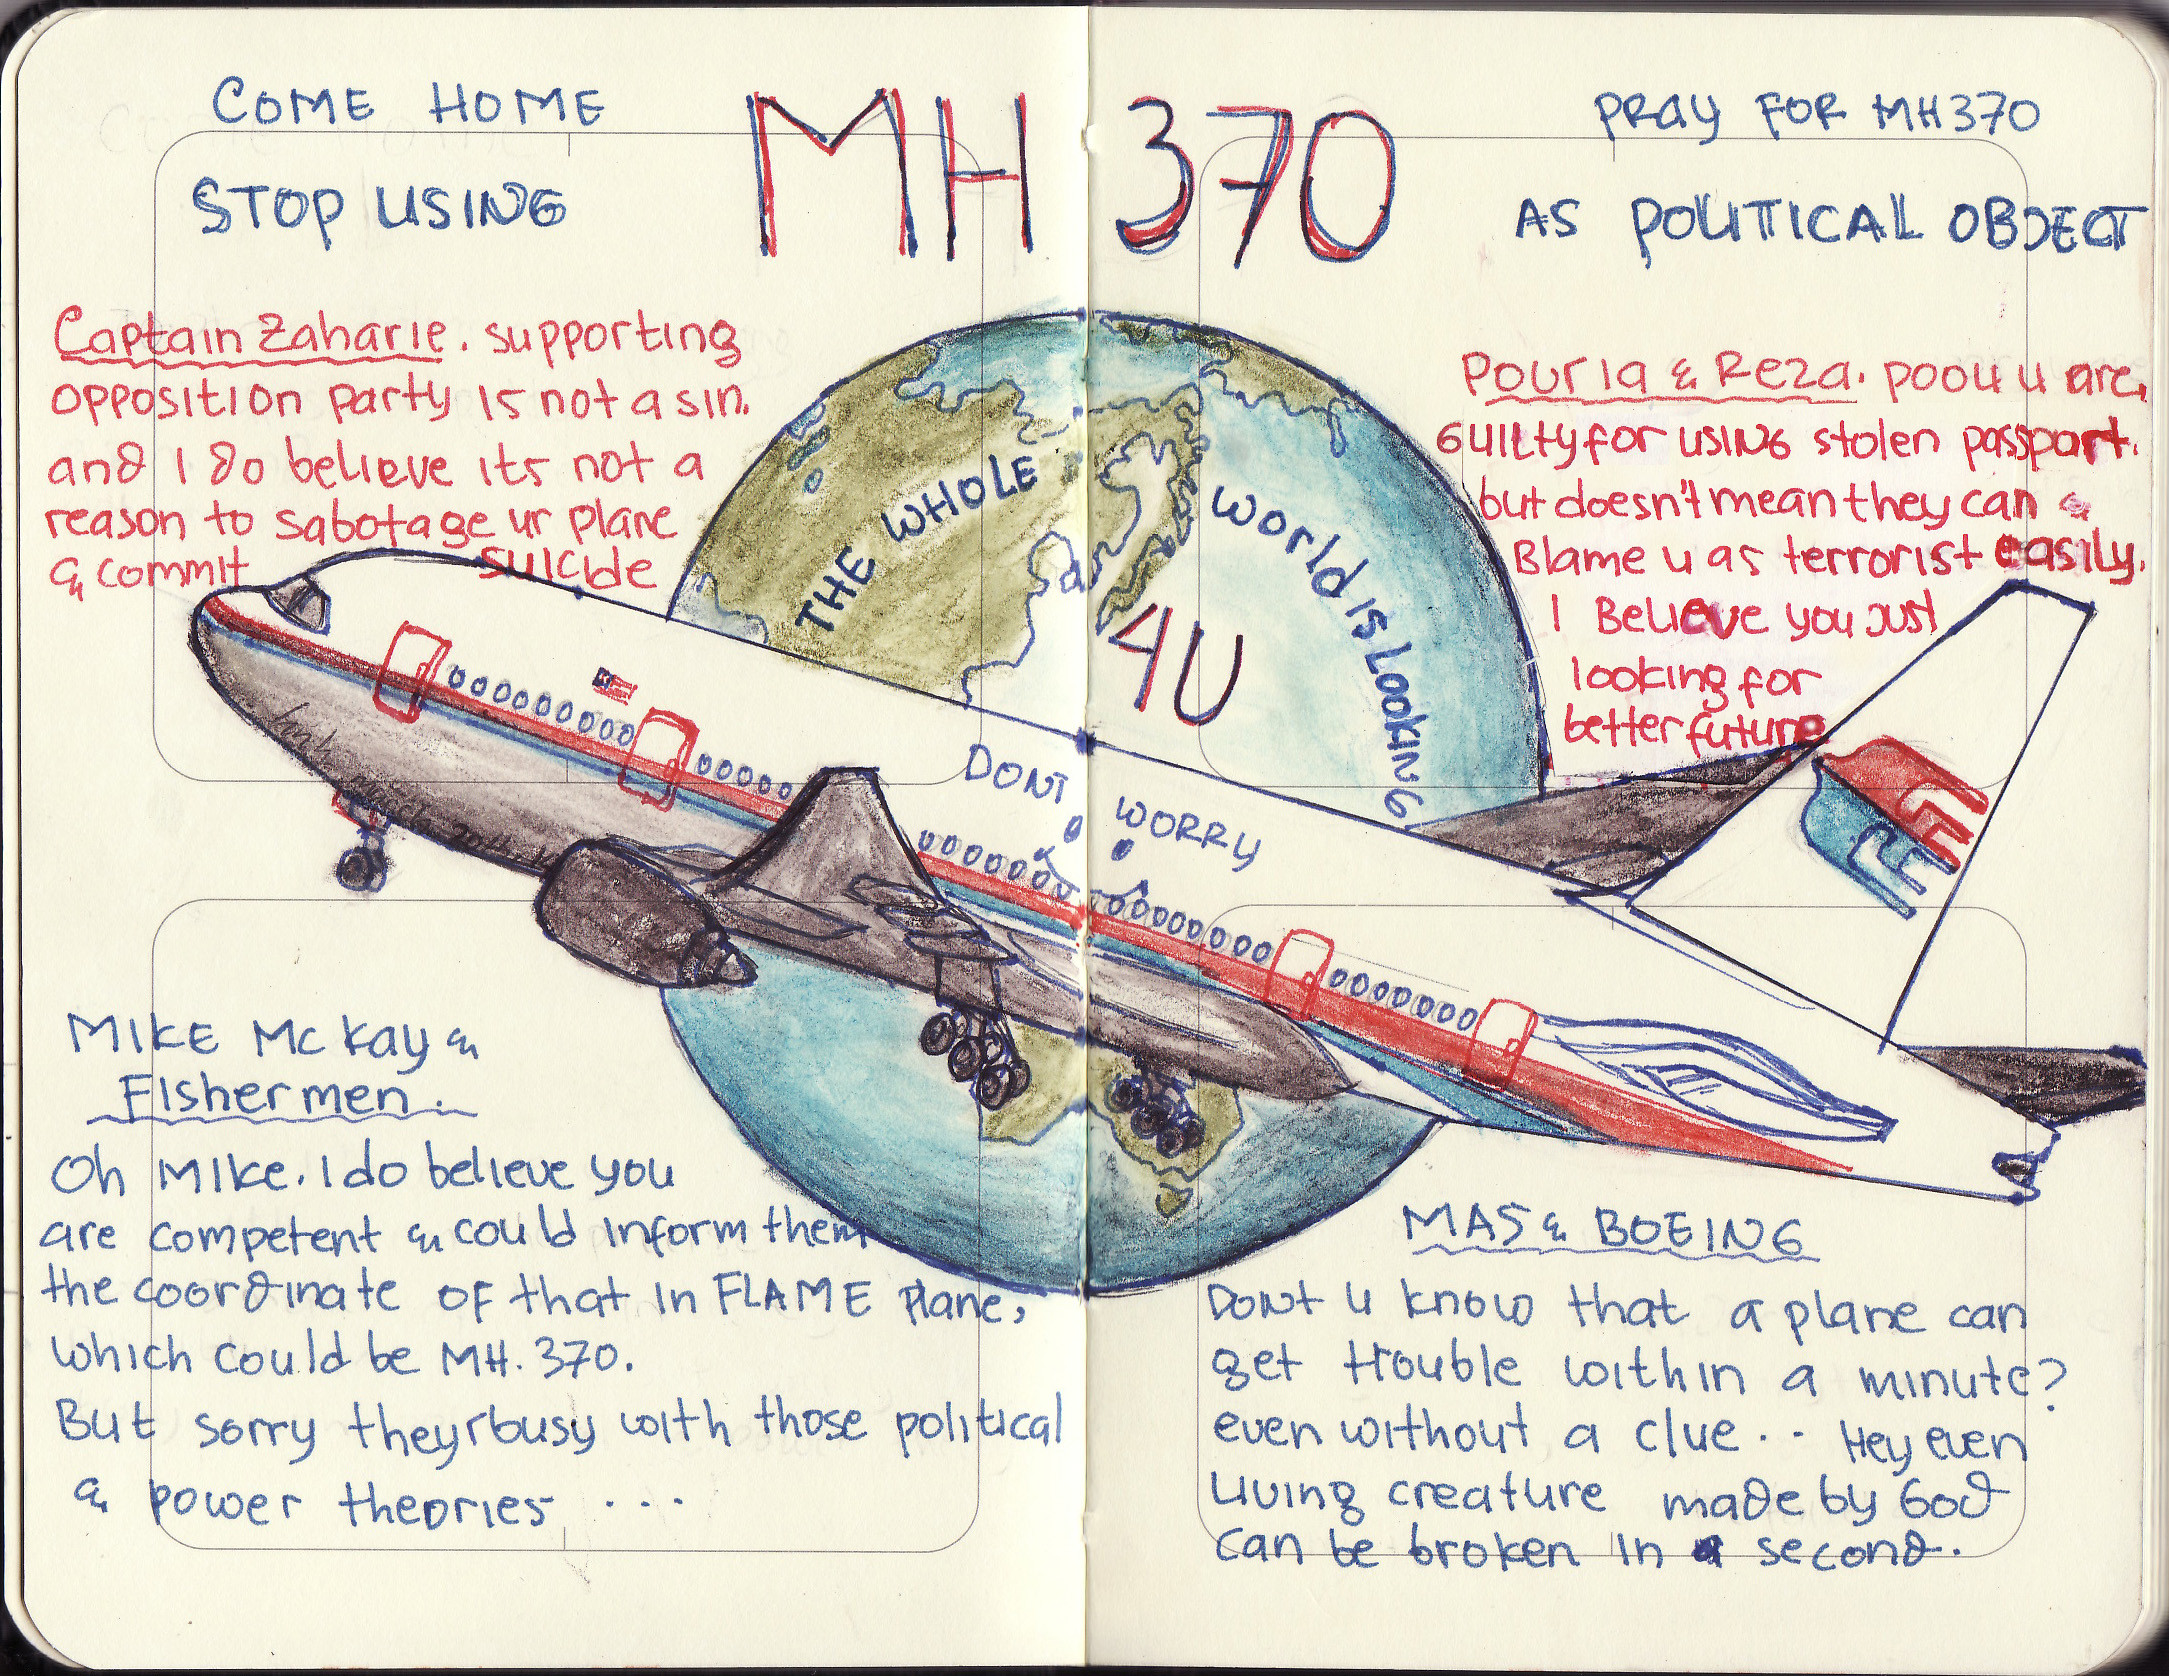 THERE IS STILL HOPE FOR MH370